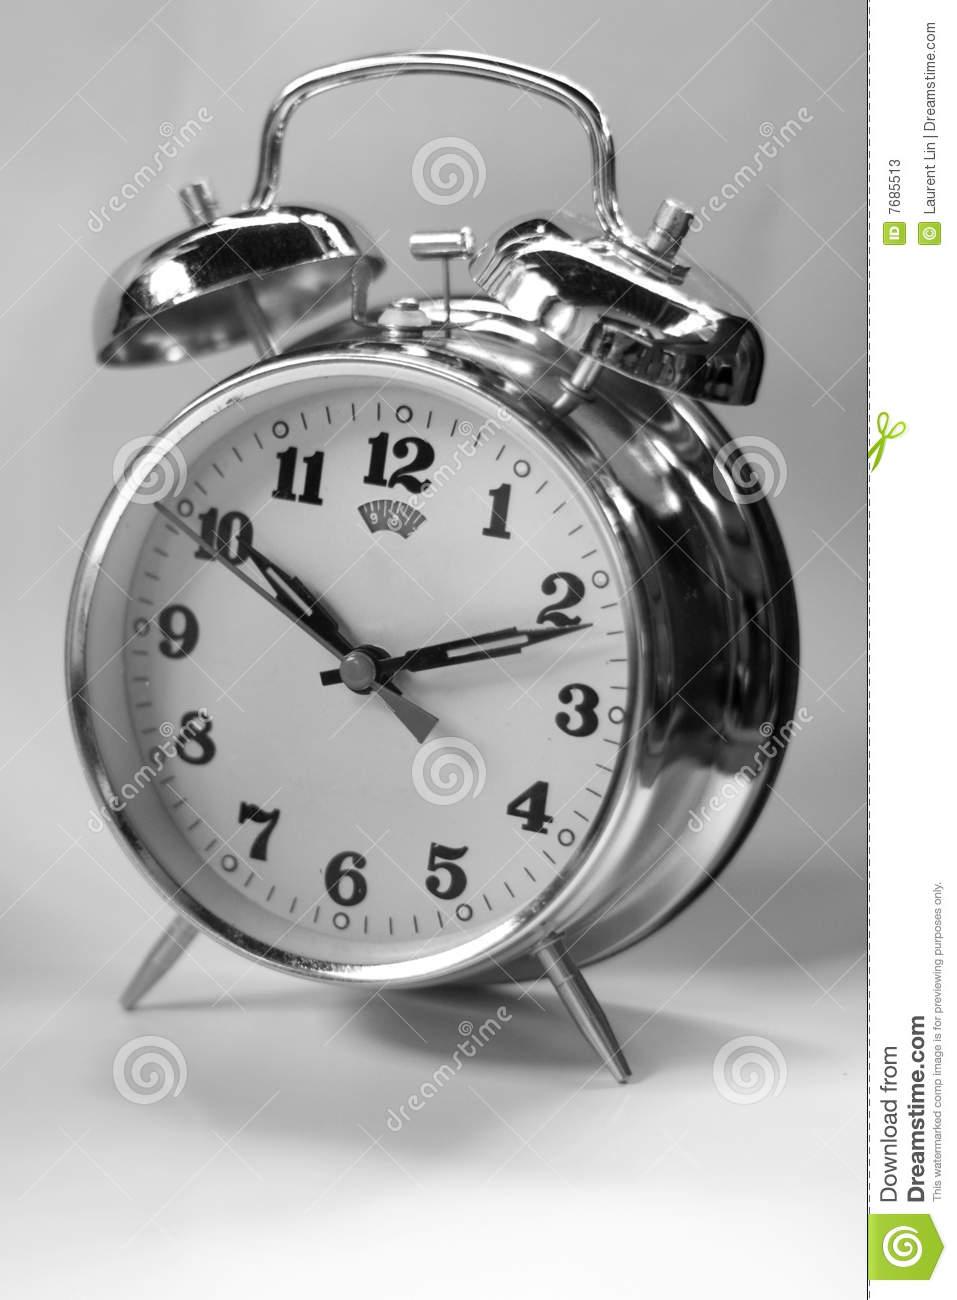 Retro Wall Clock Black And White Clock Watch Stock Photos - Image: 7685513